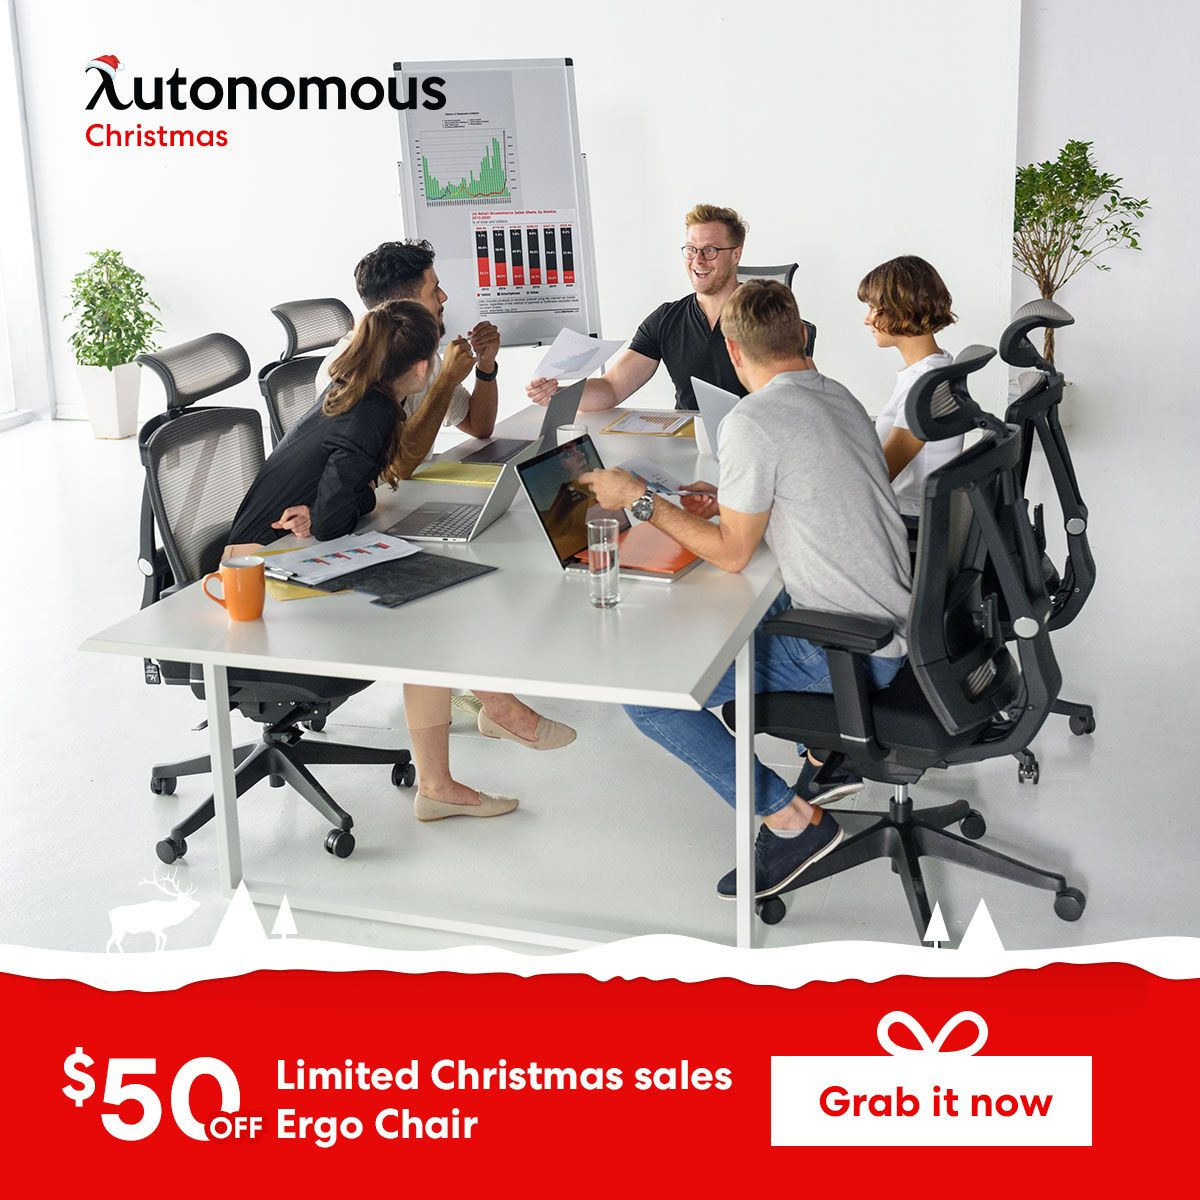 Limited Christmas Sales. Get your 50 off Ergo Chair